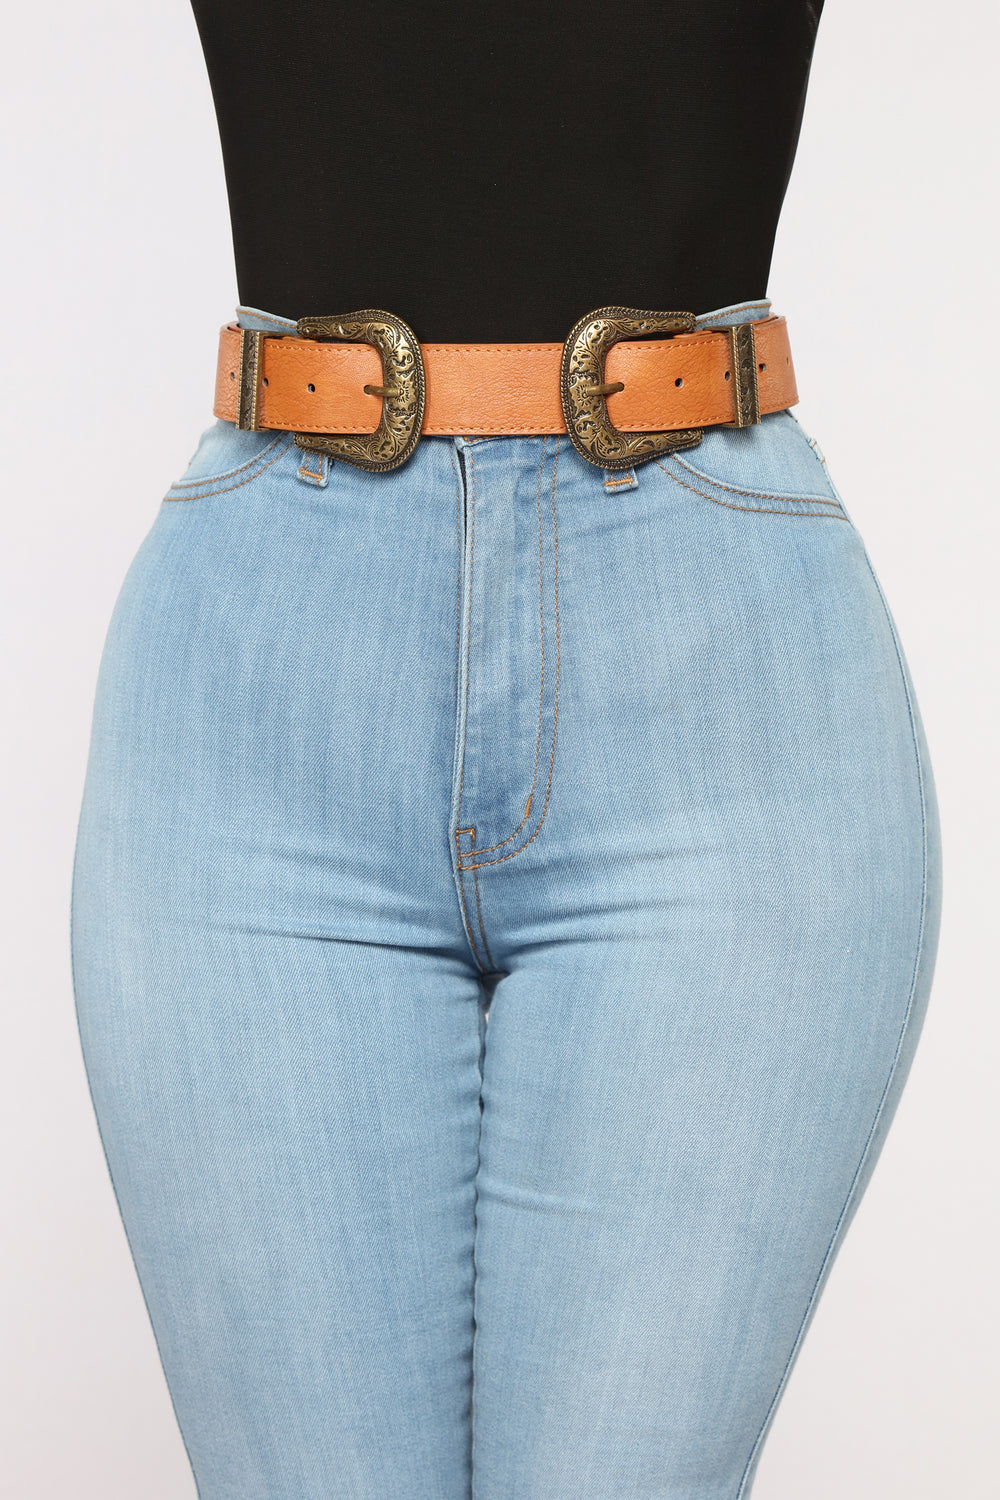 Brianna Double Buckle Belt - Tan/Gold